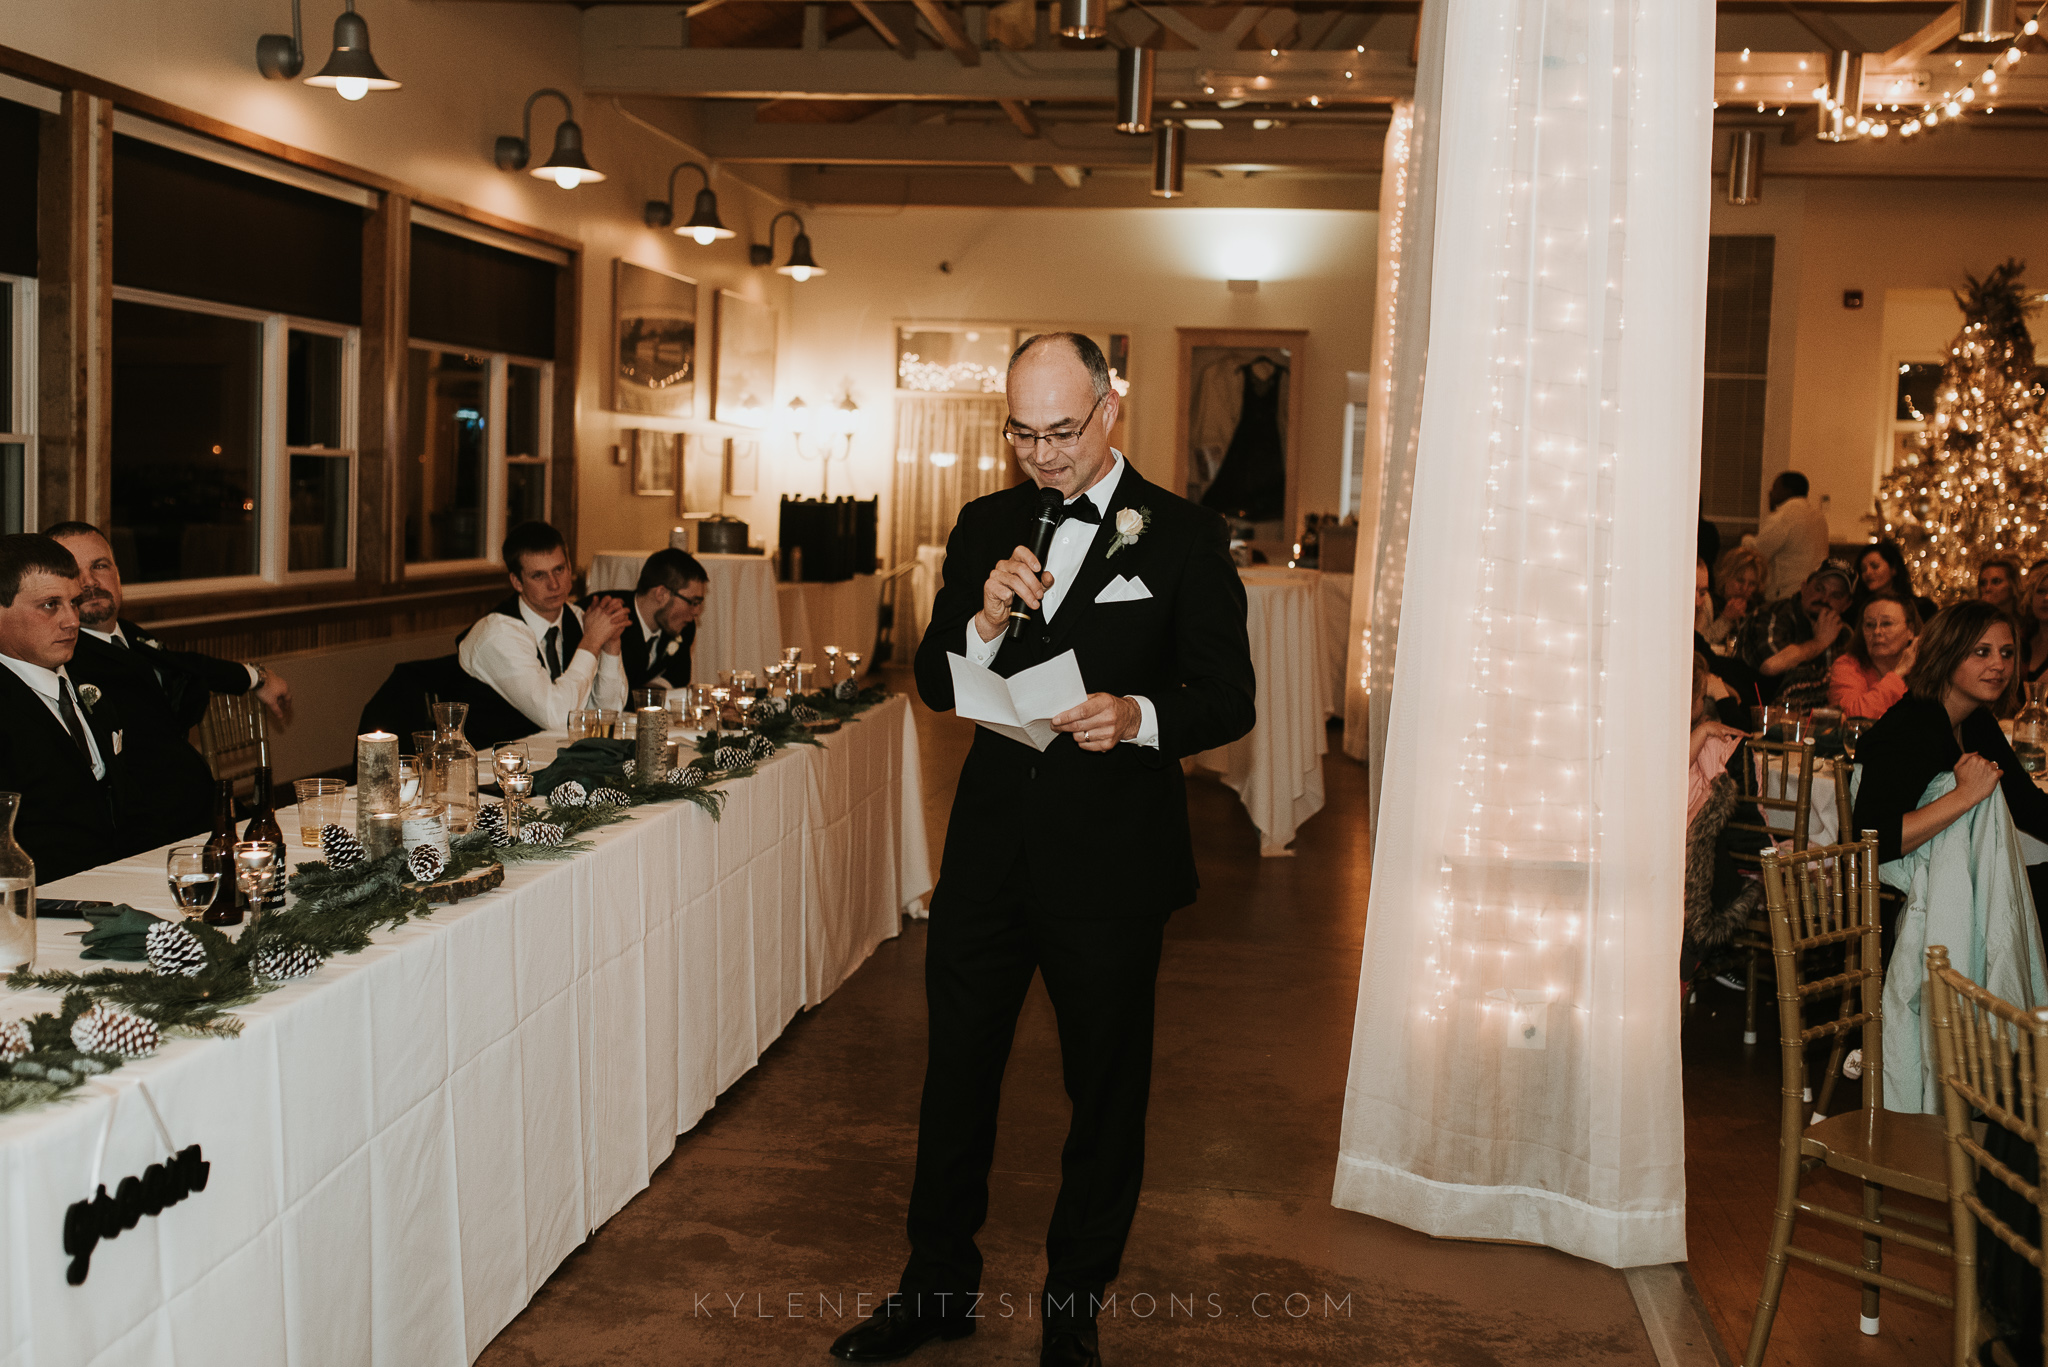 giannonatti-minnesota-winter-wedding-123.jpg